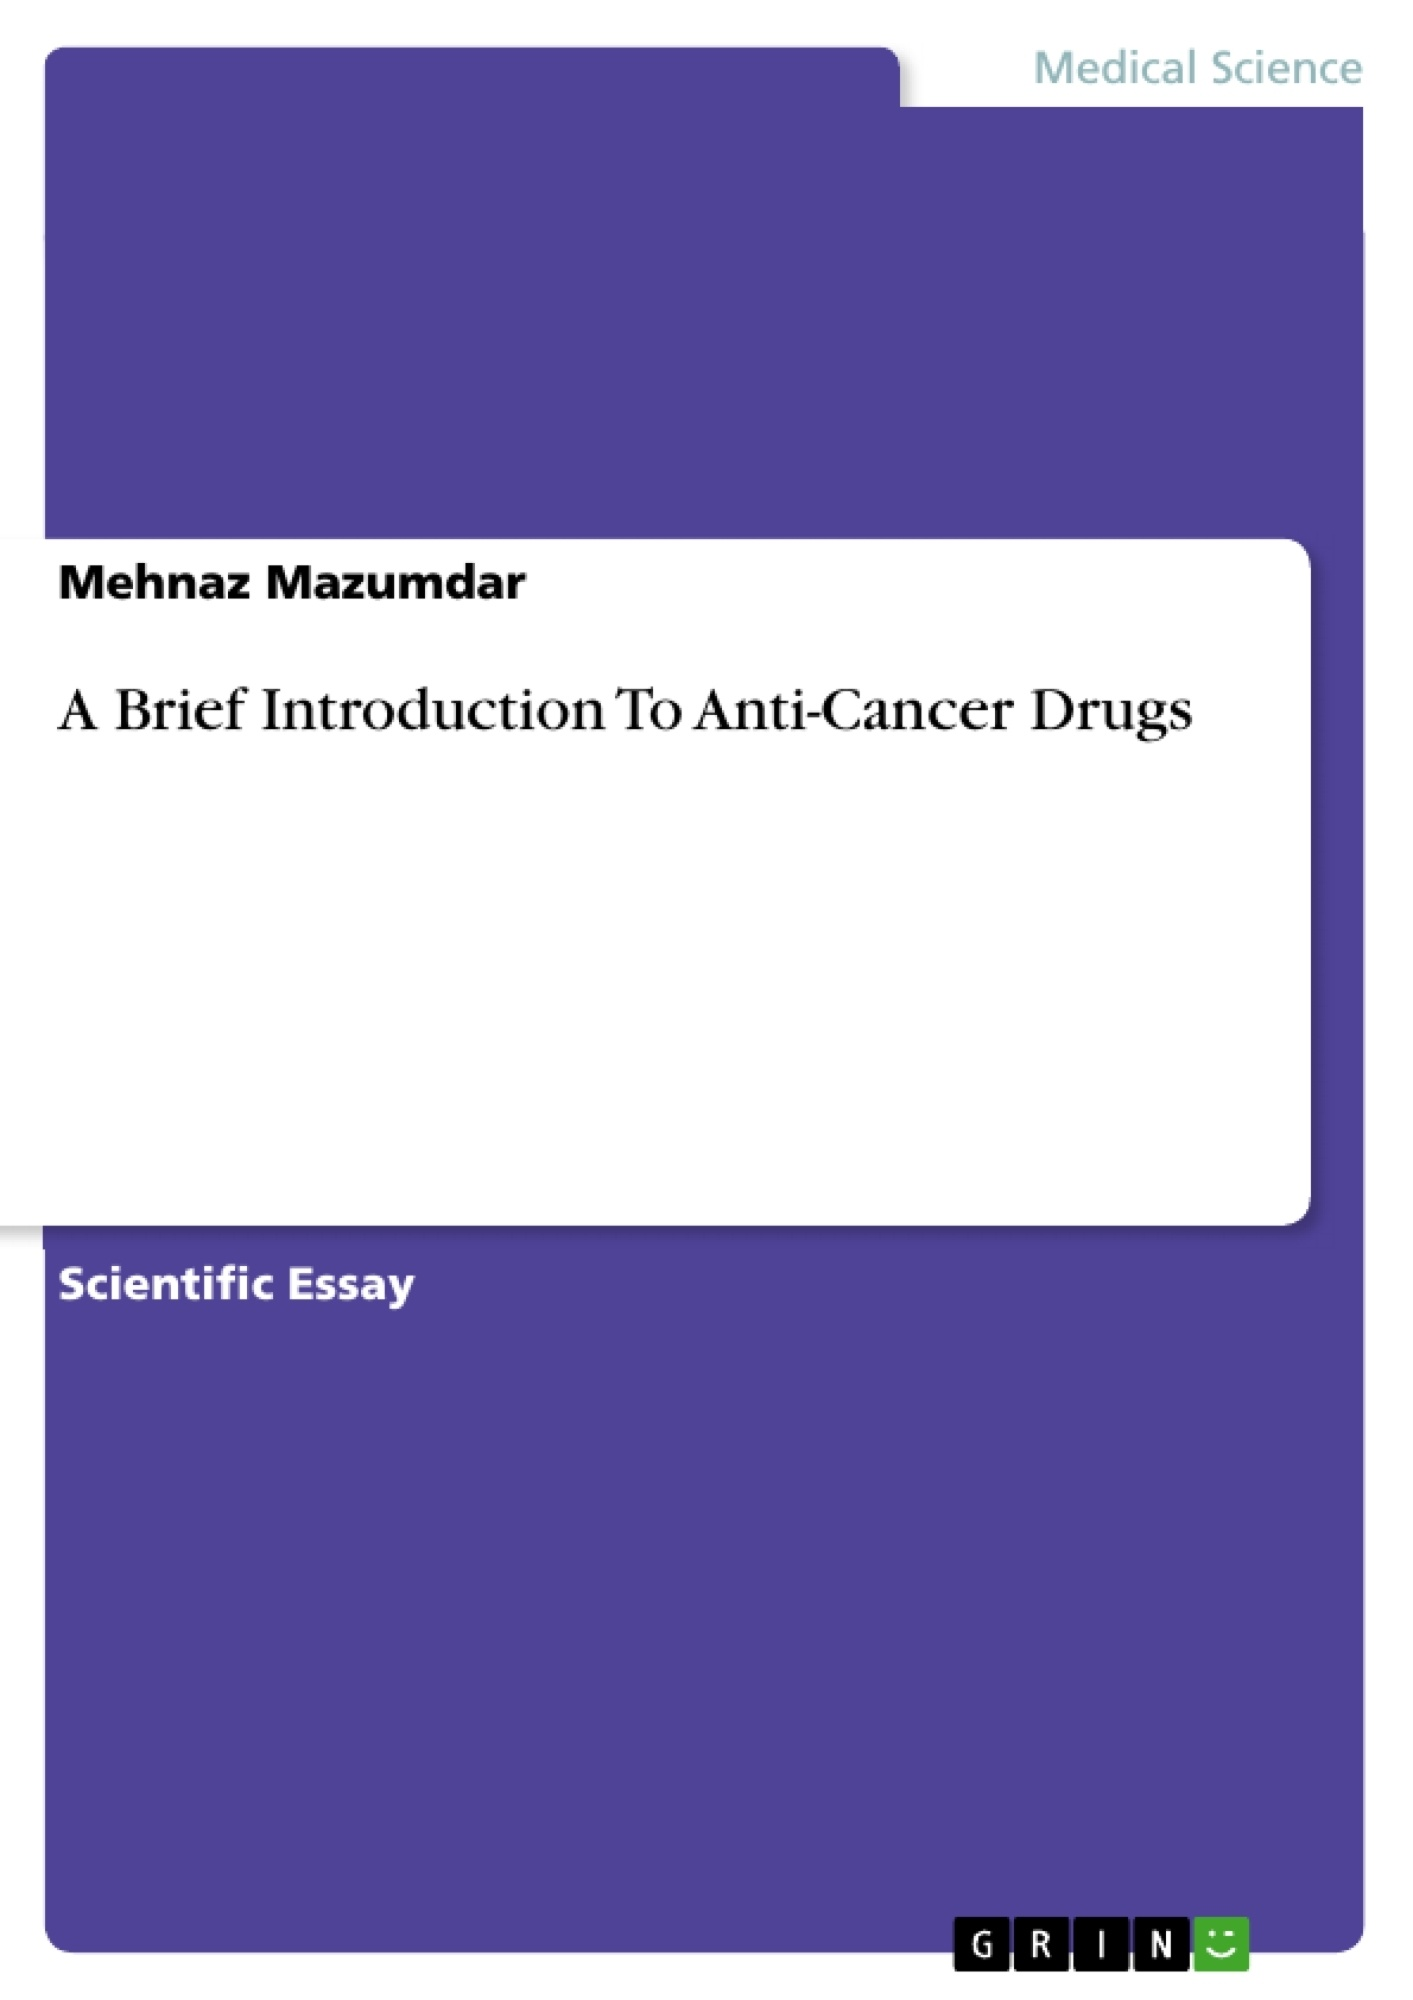 a brief introduction to anti cancer drugs publish your master s a brief introduction to anti cancer drugs publish your master s thesis bachelor s thesis essay or term paper